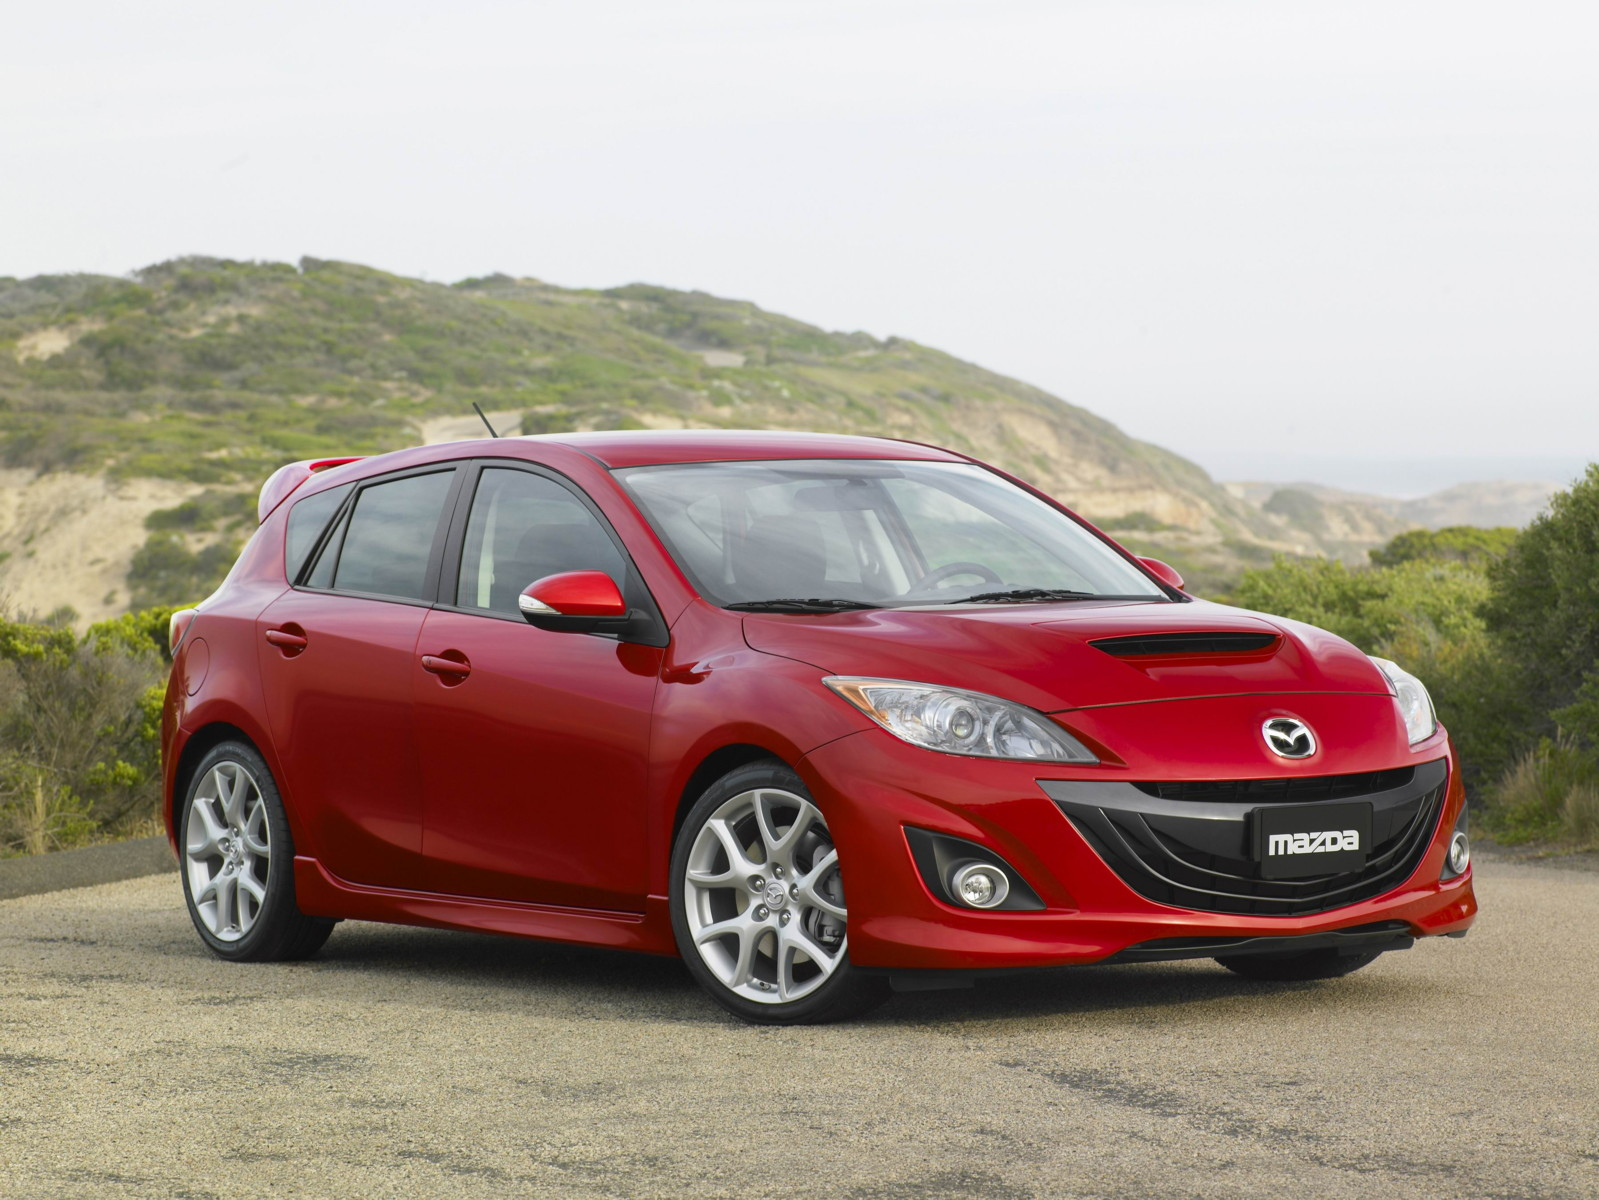 2010 Mazda Mazda3 Review Ratings Specs Prices And Photos